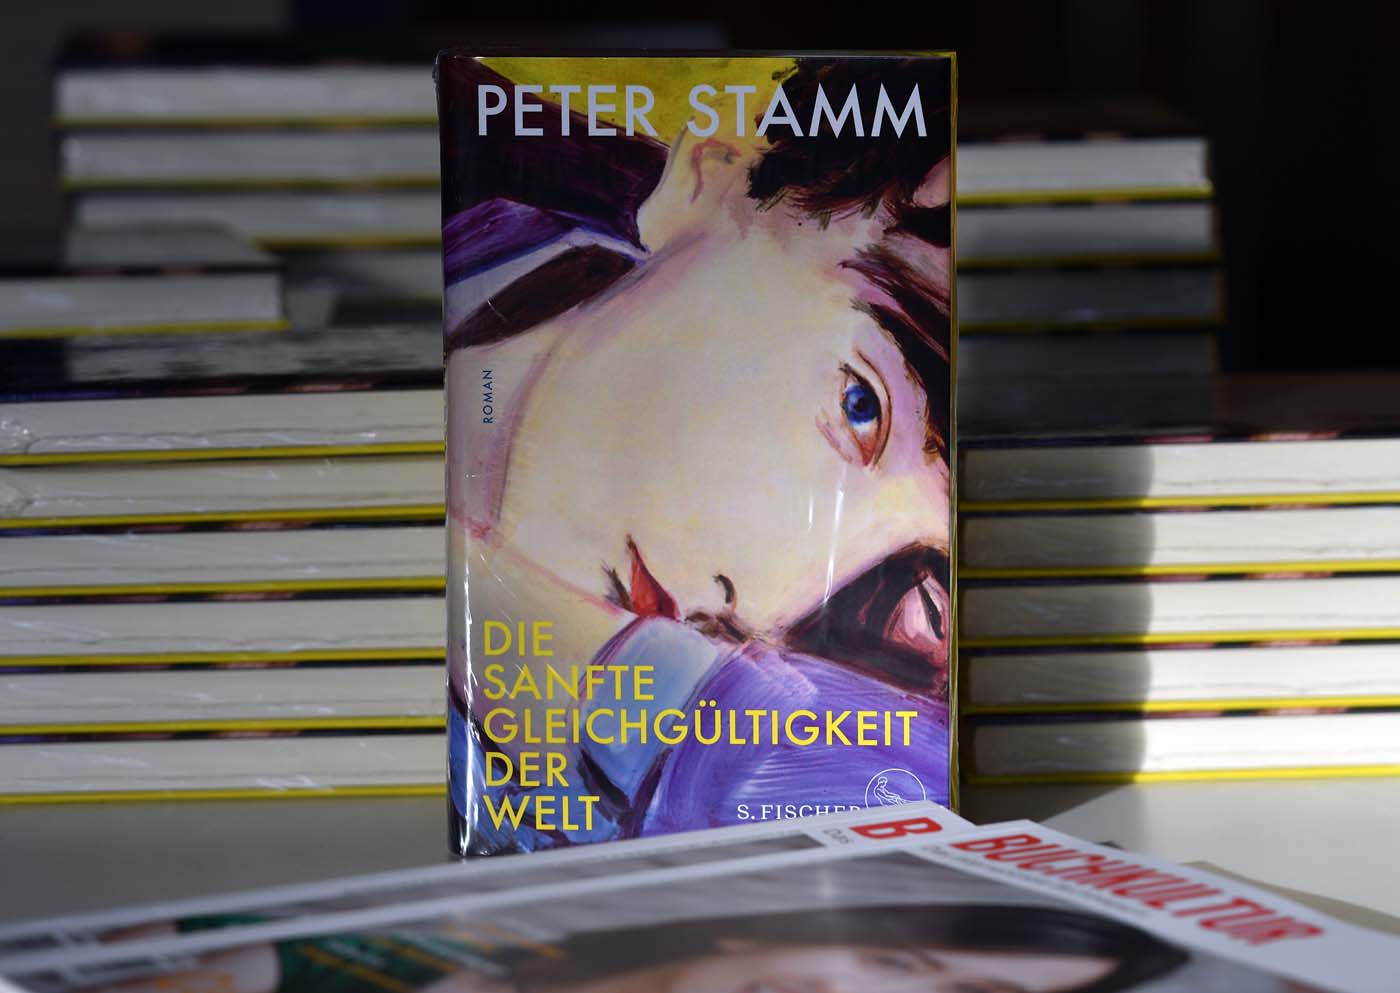 Peter Stamm am 1. Juni 2018 in Prüm